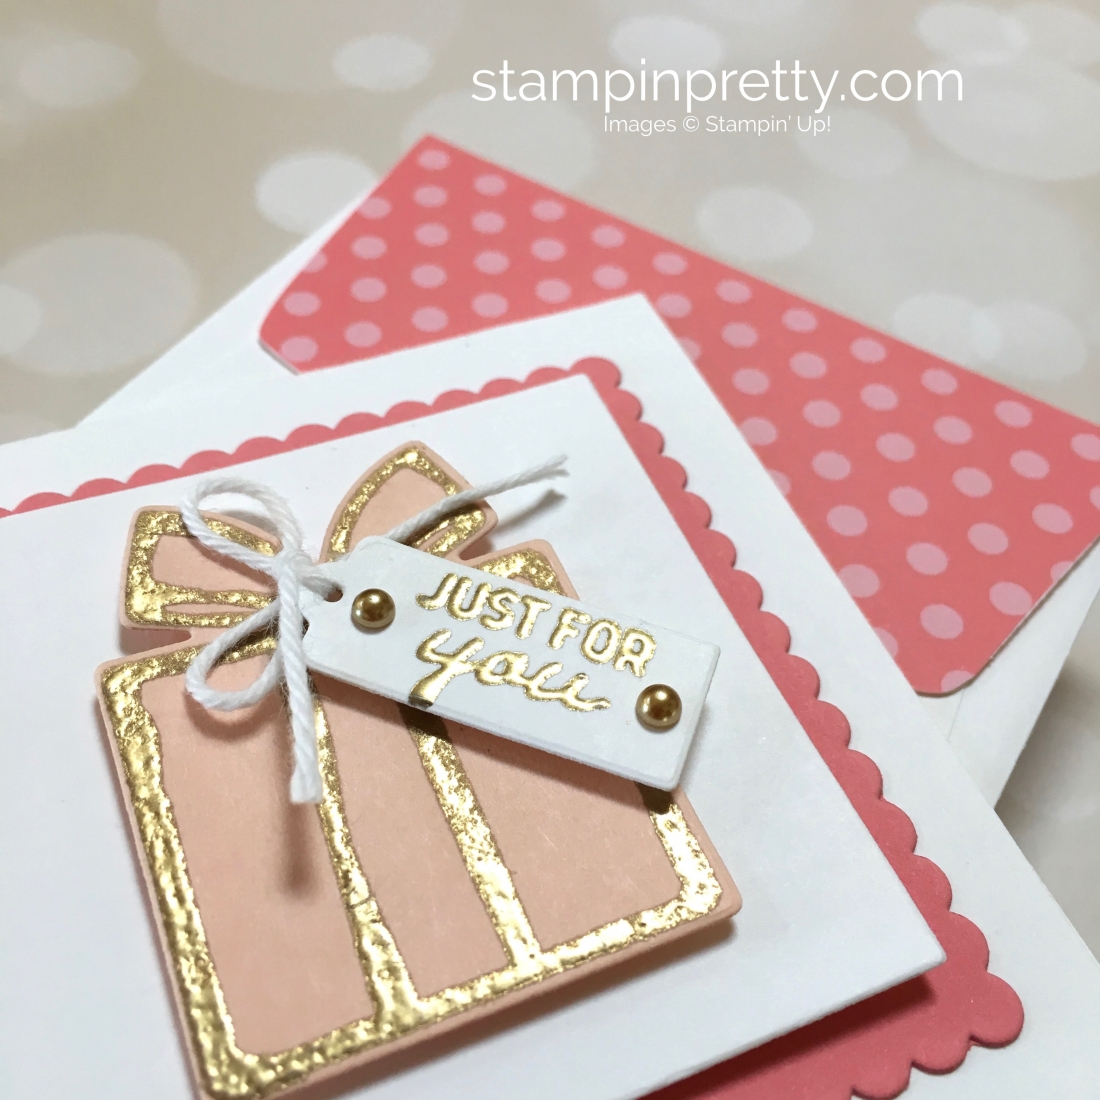 Create a simple 3 x 3 gift card using Nothing Sweeter and Sweetly Stitched Dies - Mary Fish StampinUp Ideas